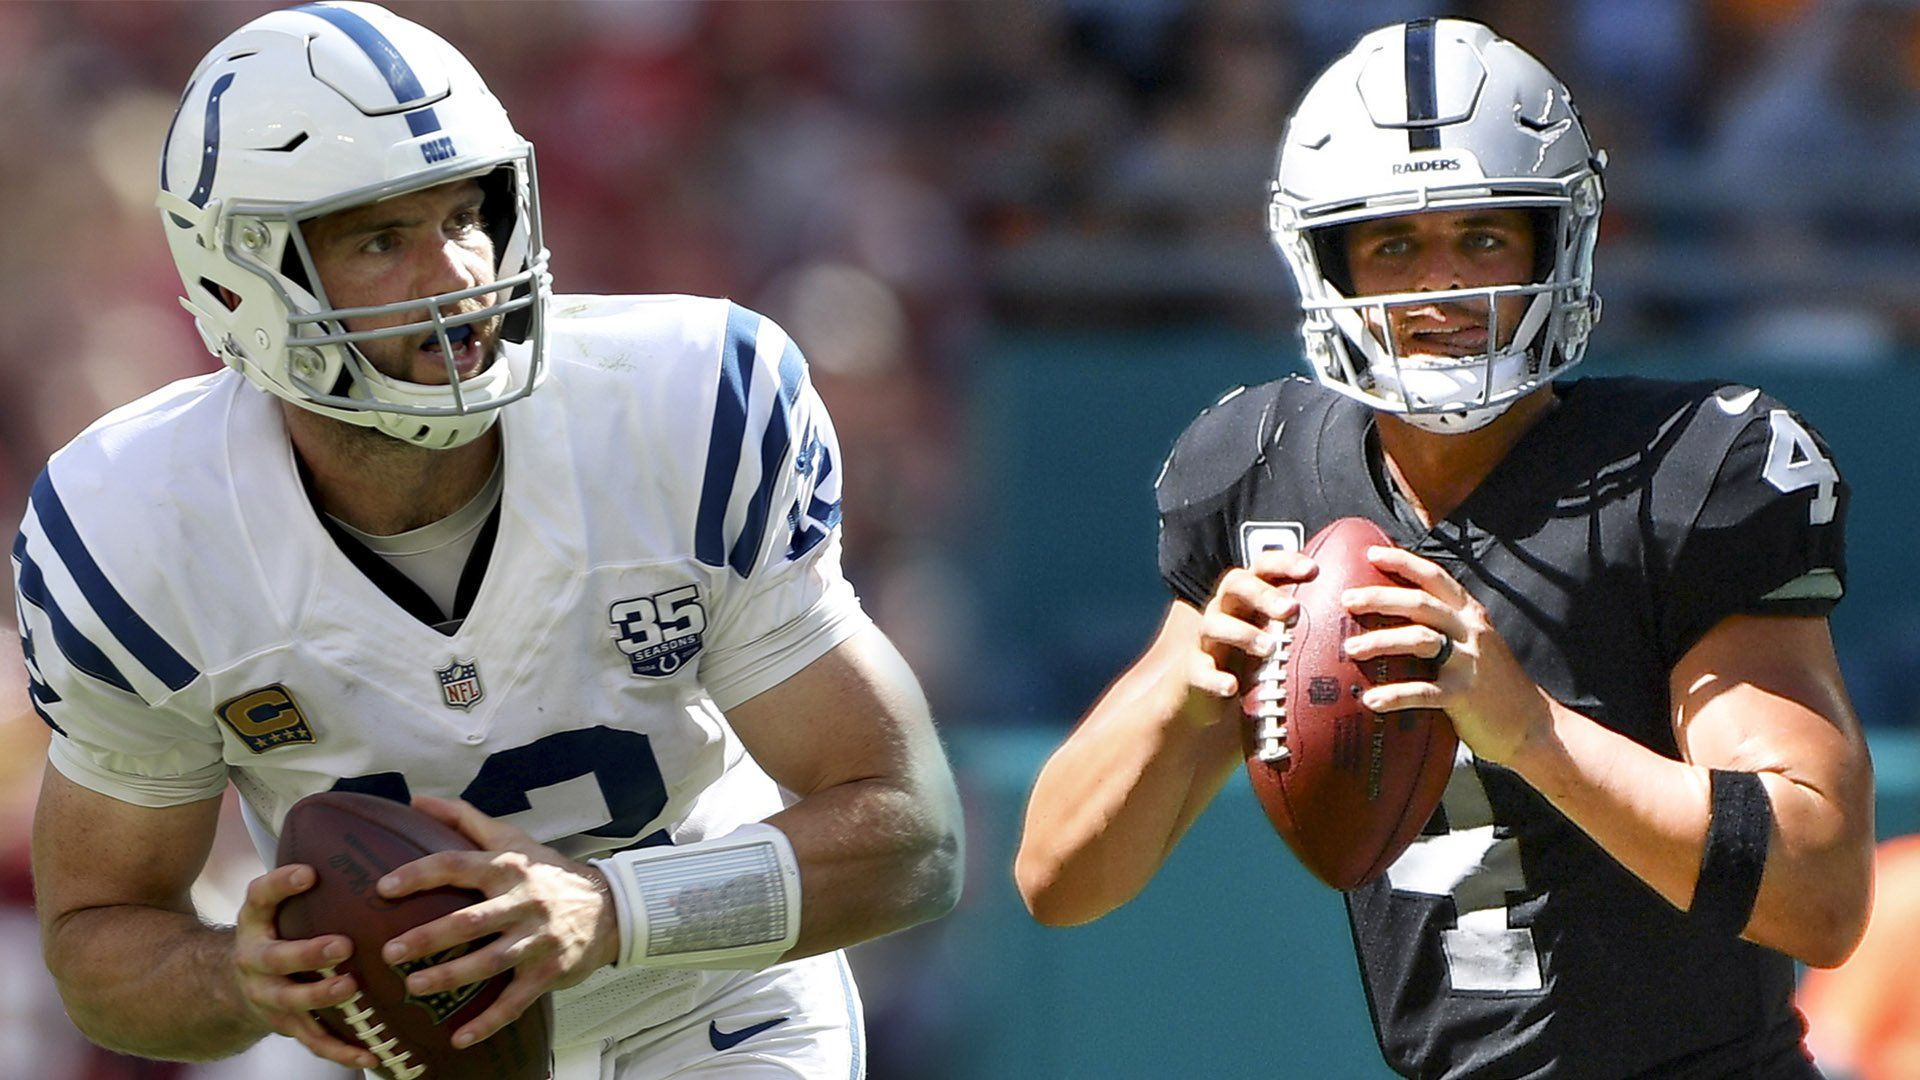 Colts vs Raiders Odds, Results and Prediction Can